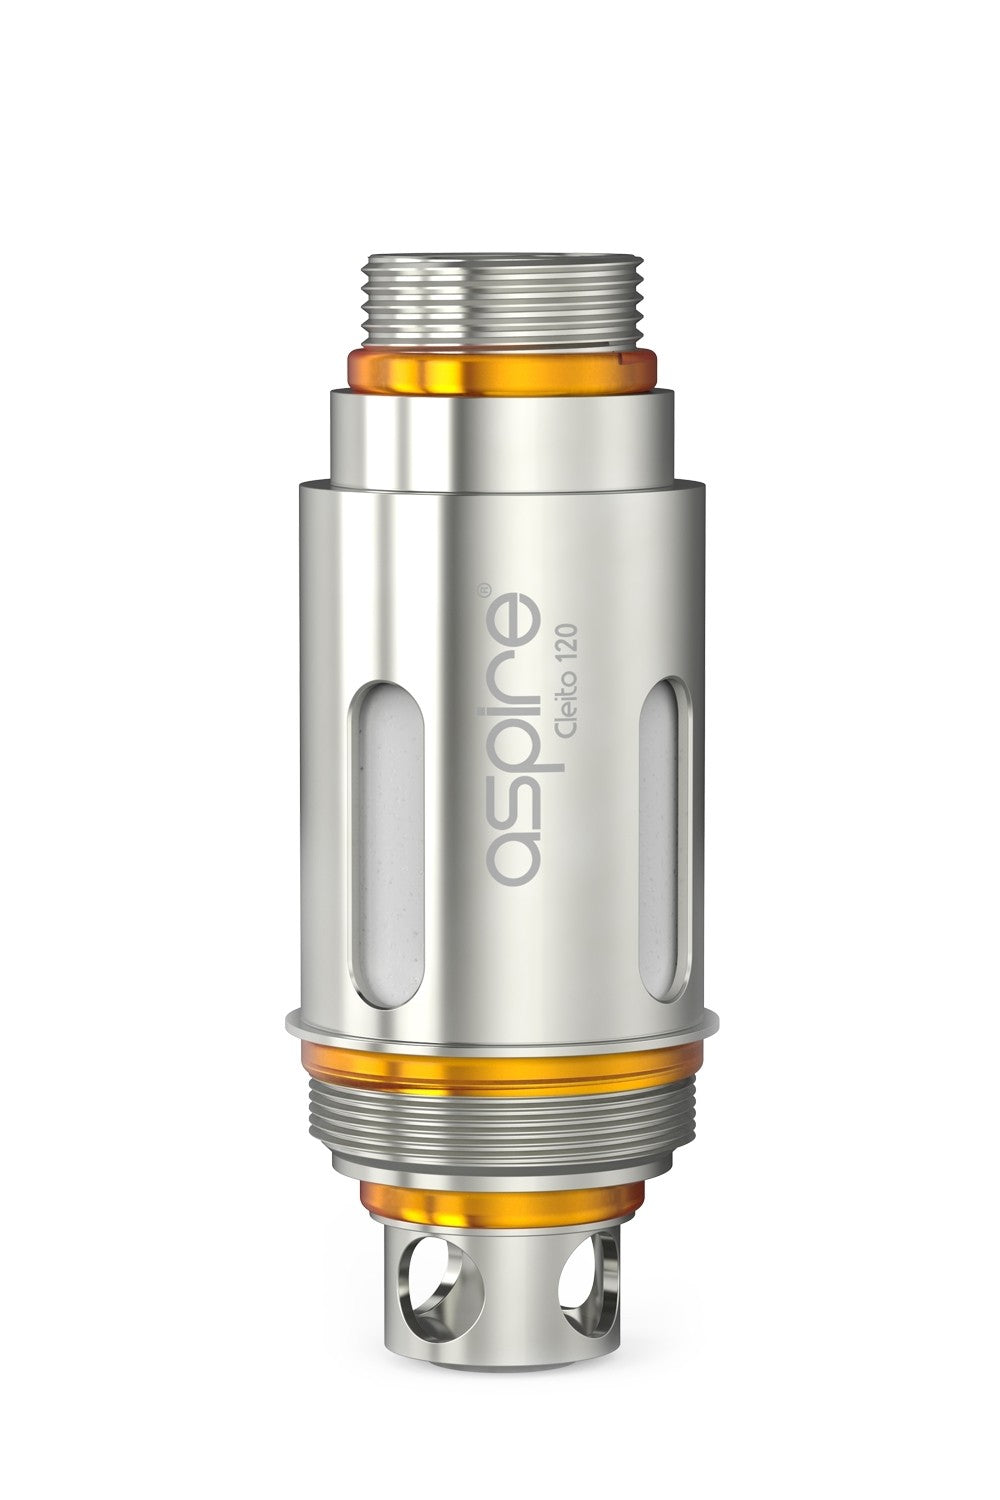 Aspire - Atomizer Cleito 120 Coil 0.16ohm Clapton for sale